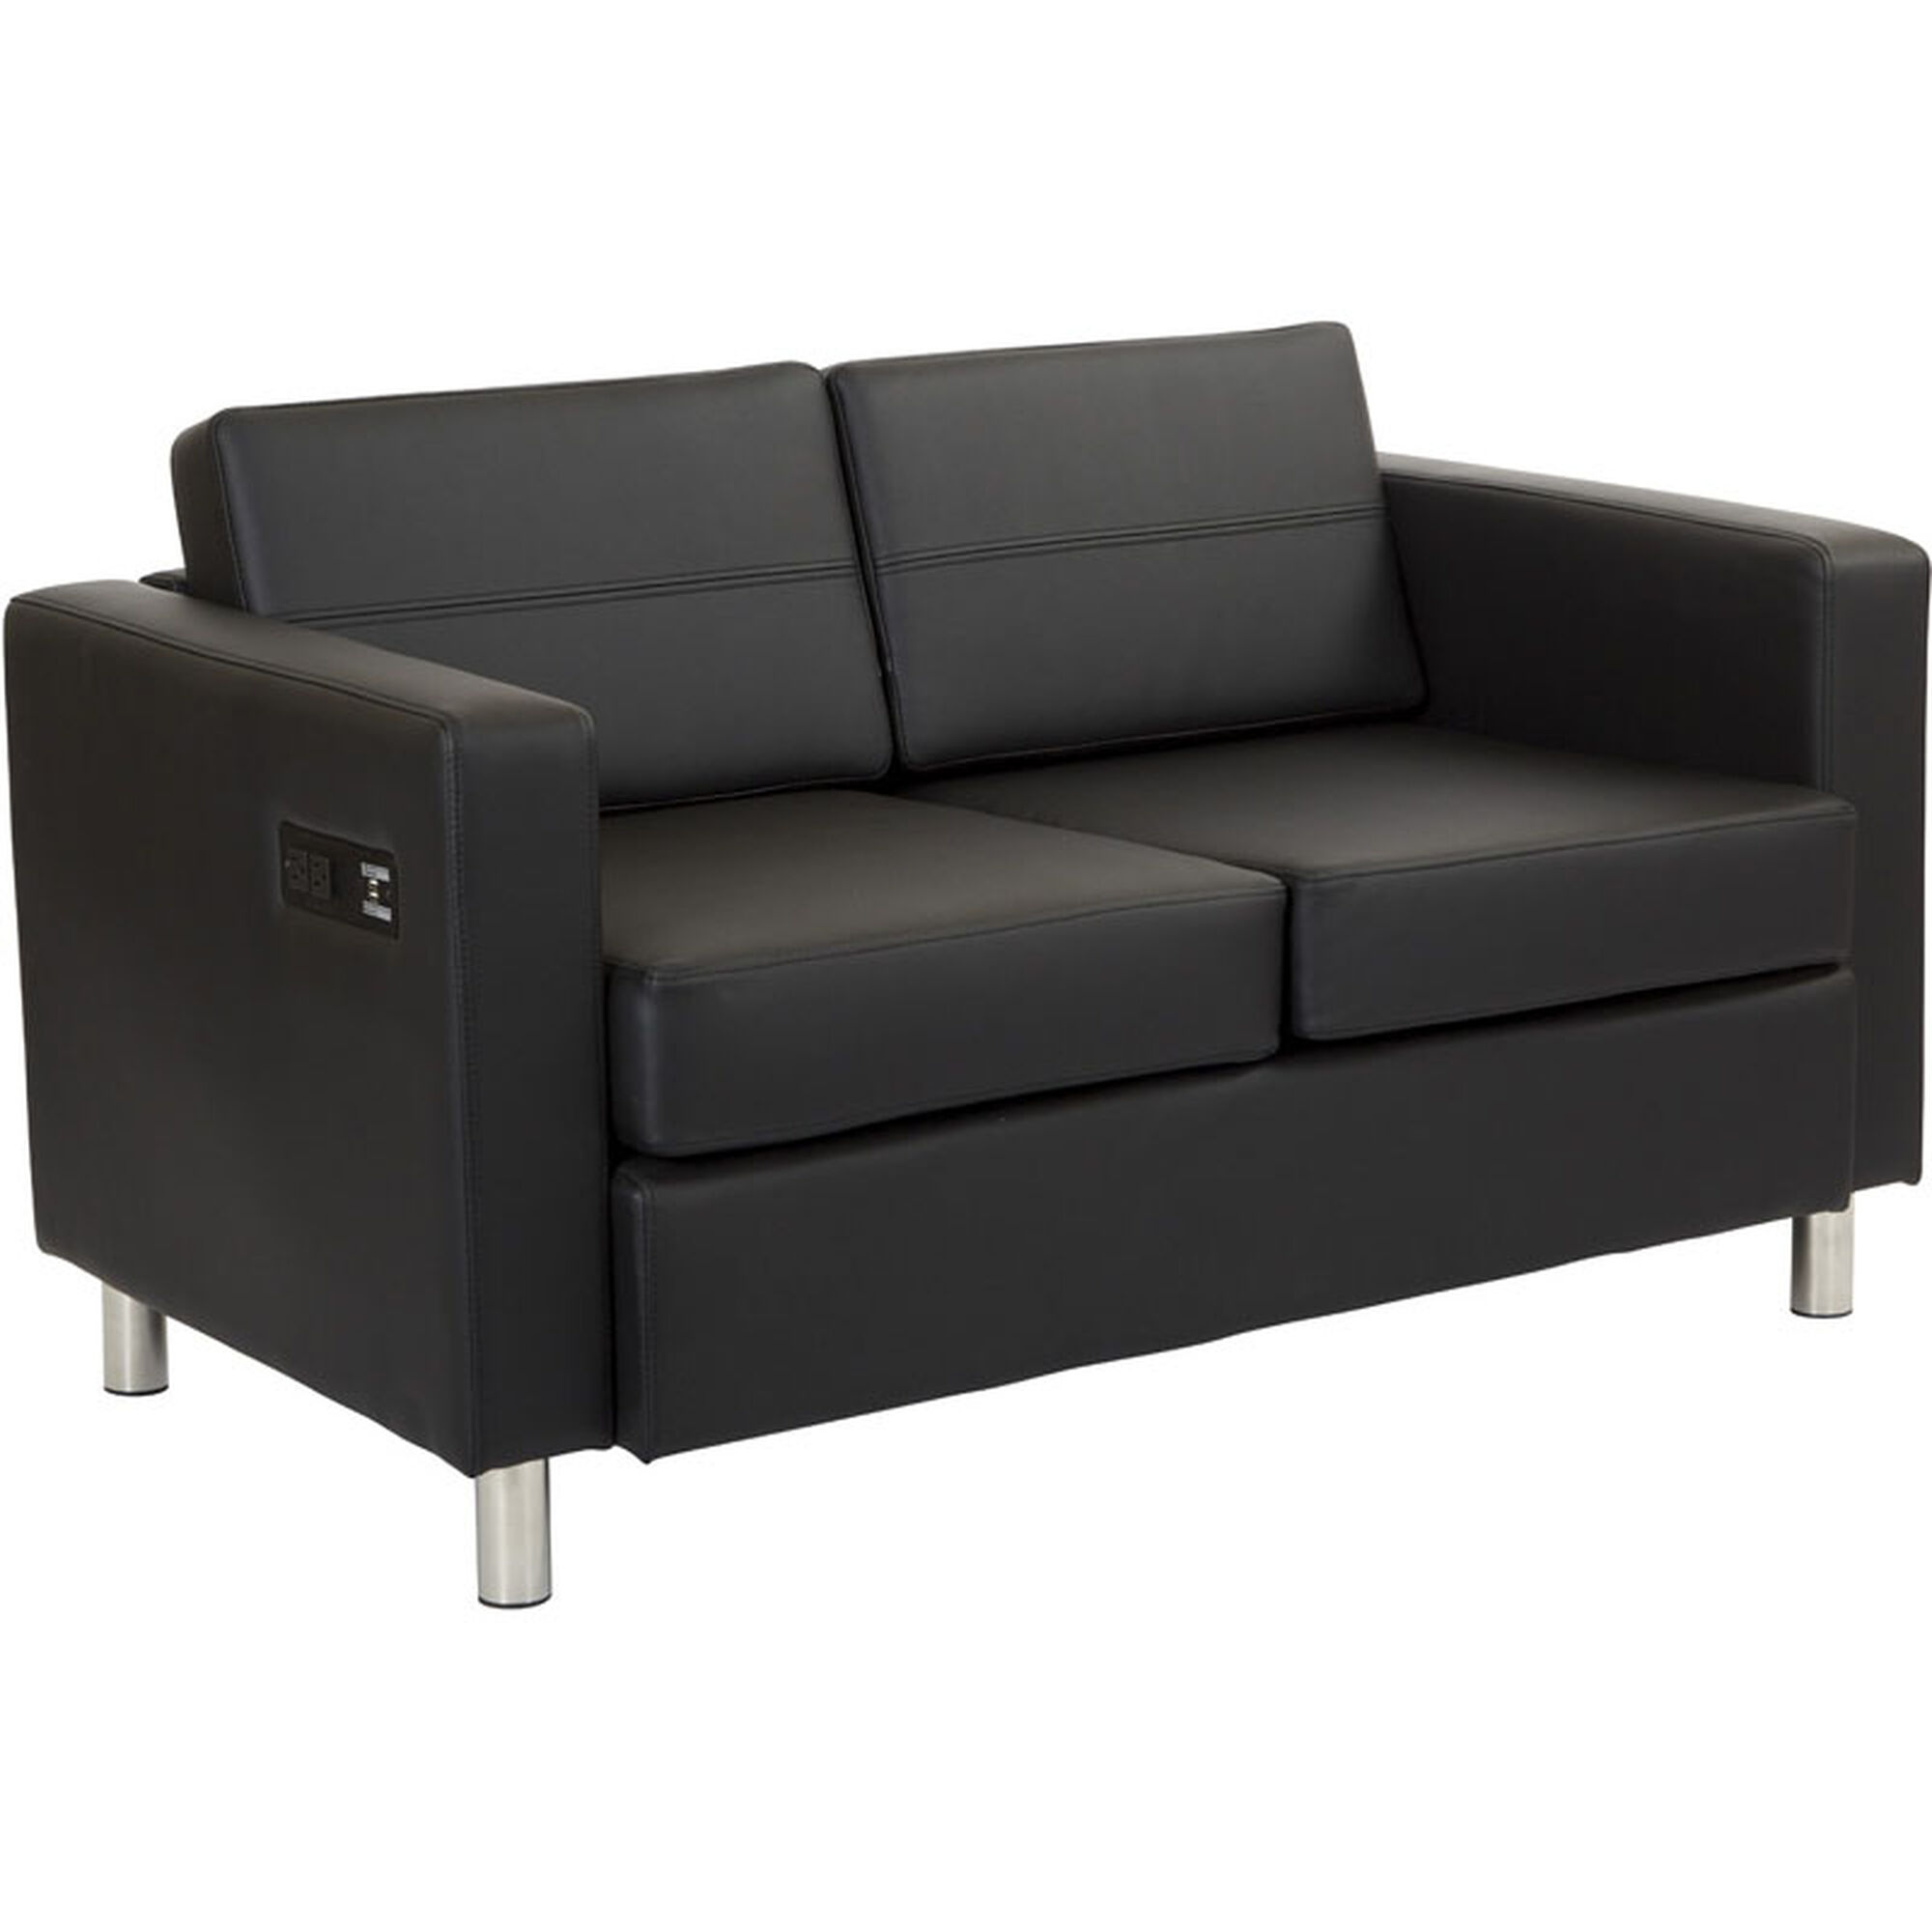 Work Smart Atlantic Loveseat with Dual Charging Station - Dillon Black